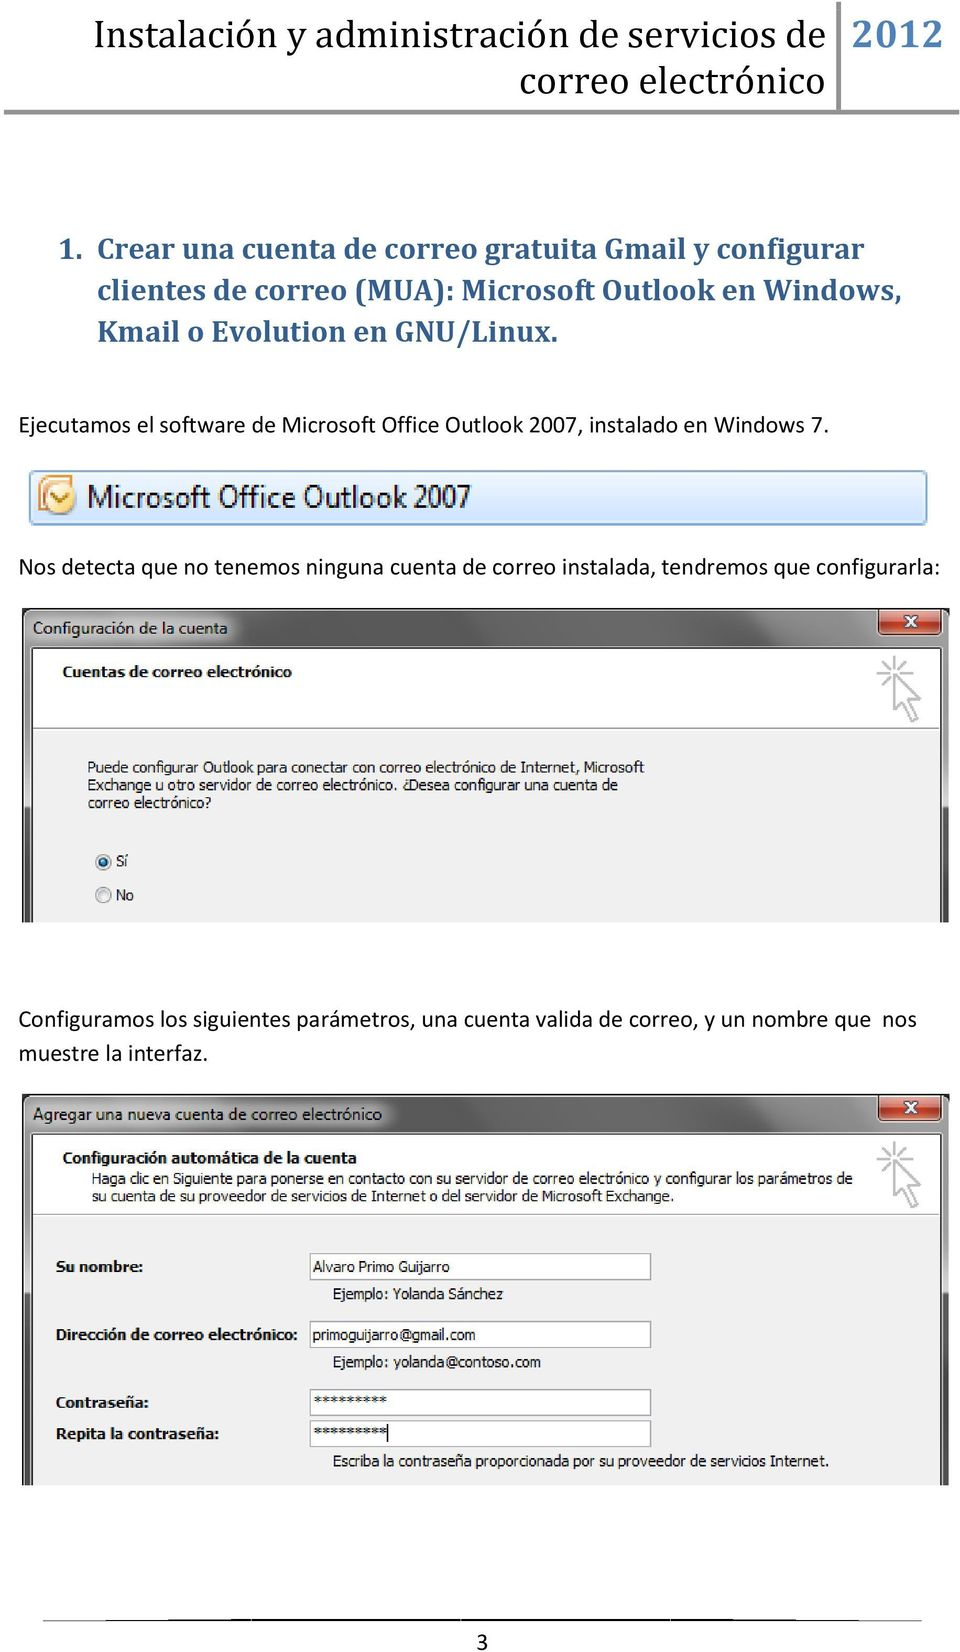 Ejecutamos el software de Microsoft Office Outlook 2007, instalado en Windows 7.